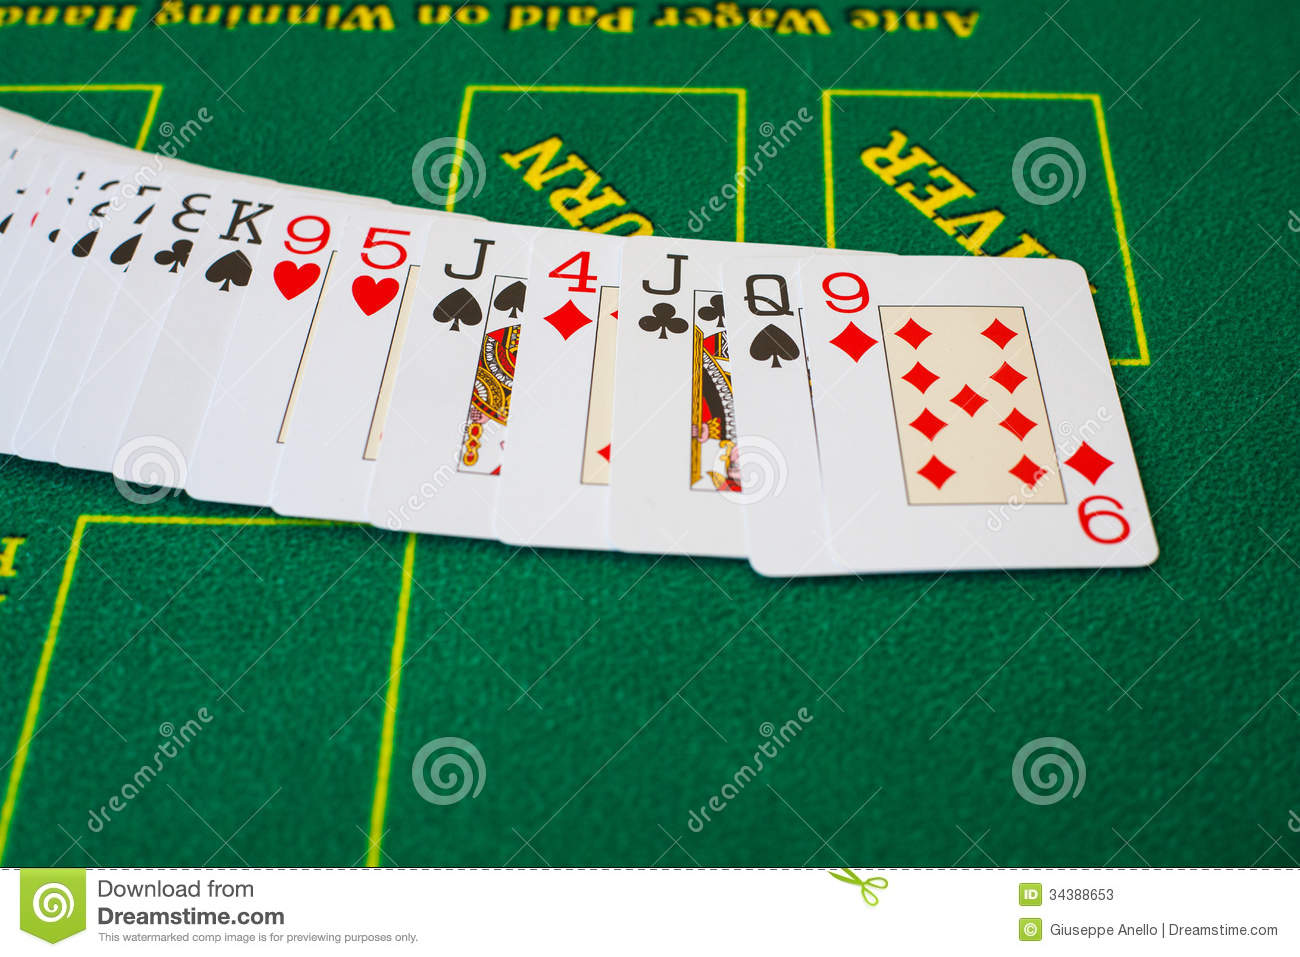 French cards for Texas hold 'em ion casino table.